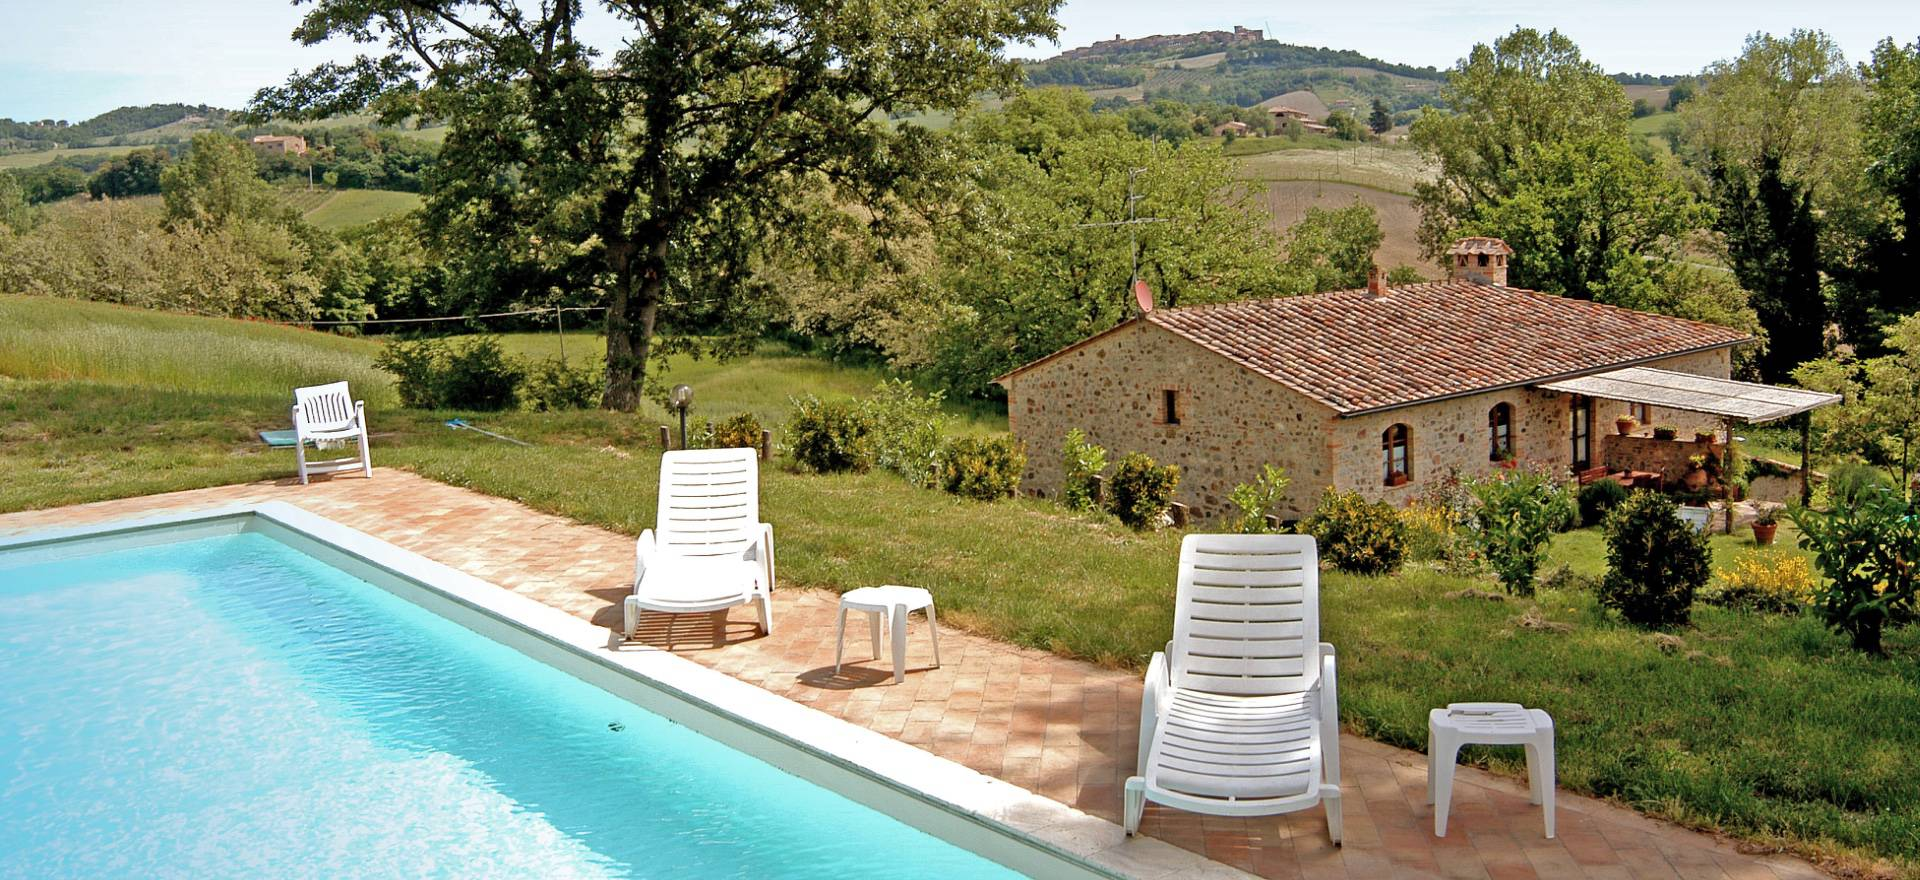 Agriturismo Tuscany Two farmhouses in Tuscany with private swimming pool